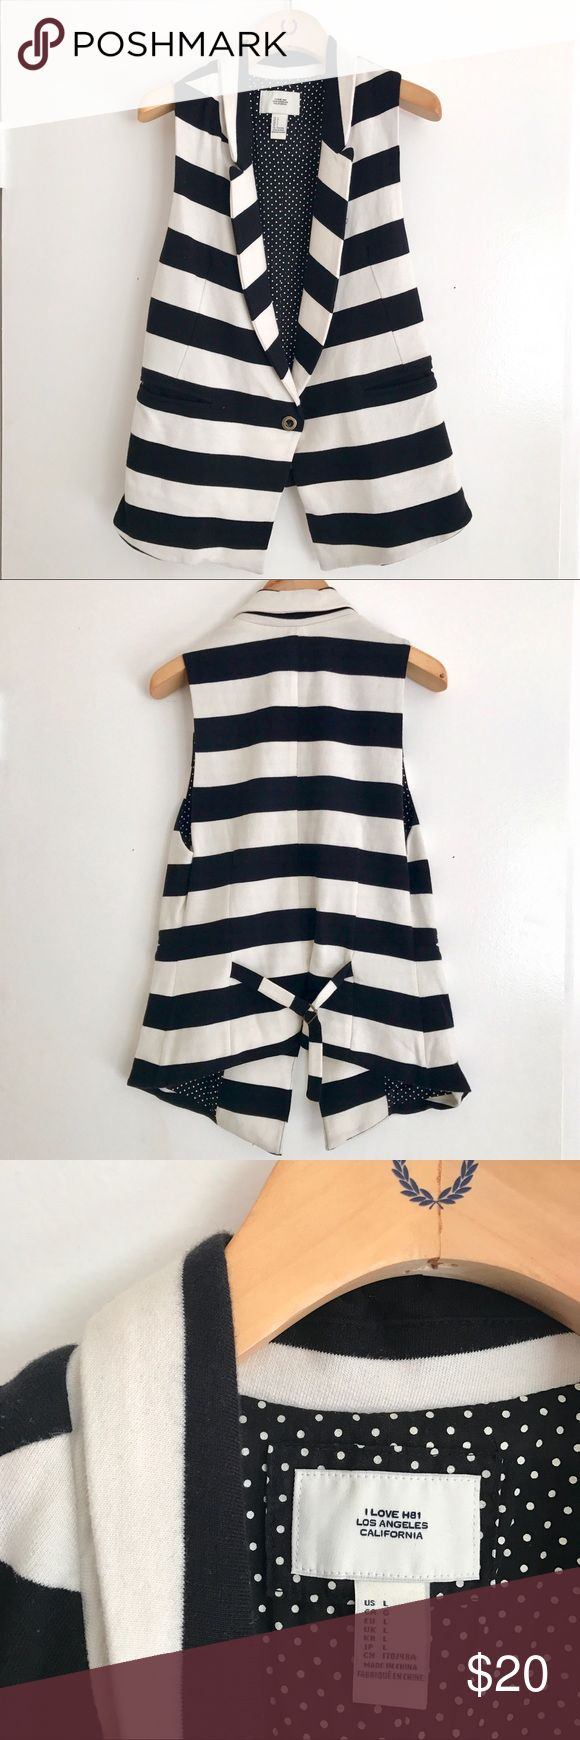 Black and White Striped Vest Size Large - Black and White Striped Vest, with cute polkadot lining! One button closure in front. There is a small mark as seen in picture, not very noticeable, it may come out in the wash. Feel free to ask questions! Jackets & Coats Vests